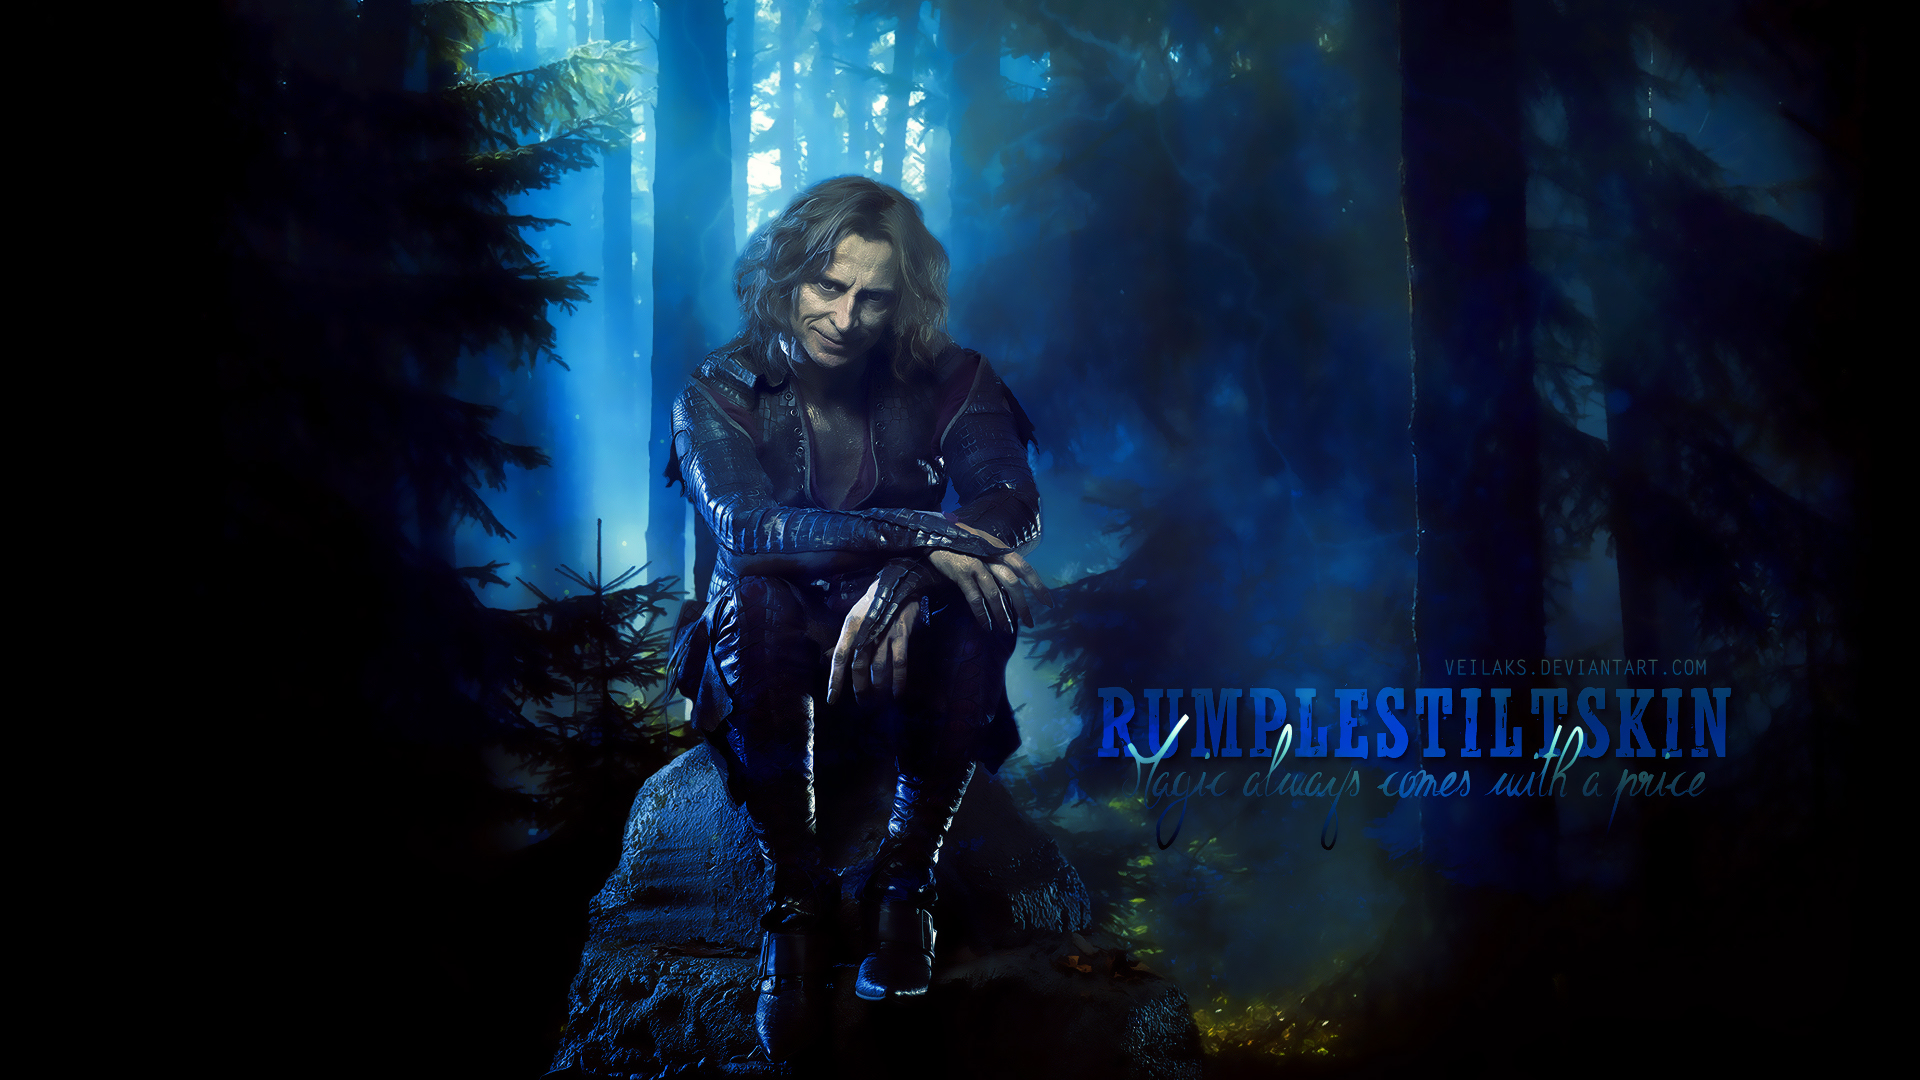 Free Download Once Upon A Time Images Rumpelstiltskin Hd Wallpaper